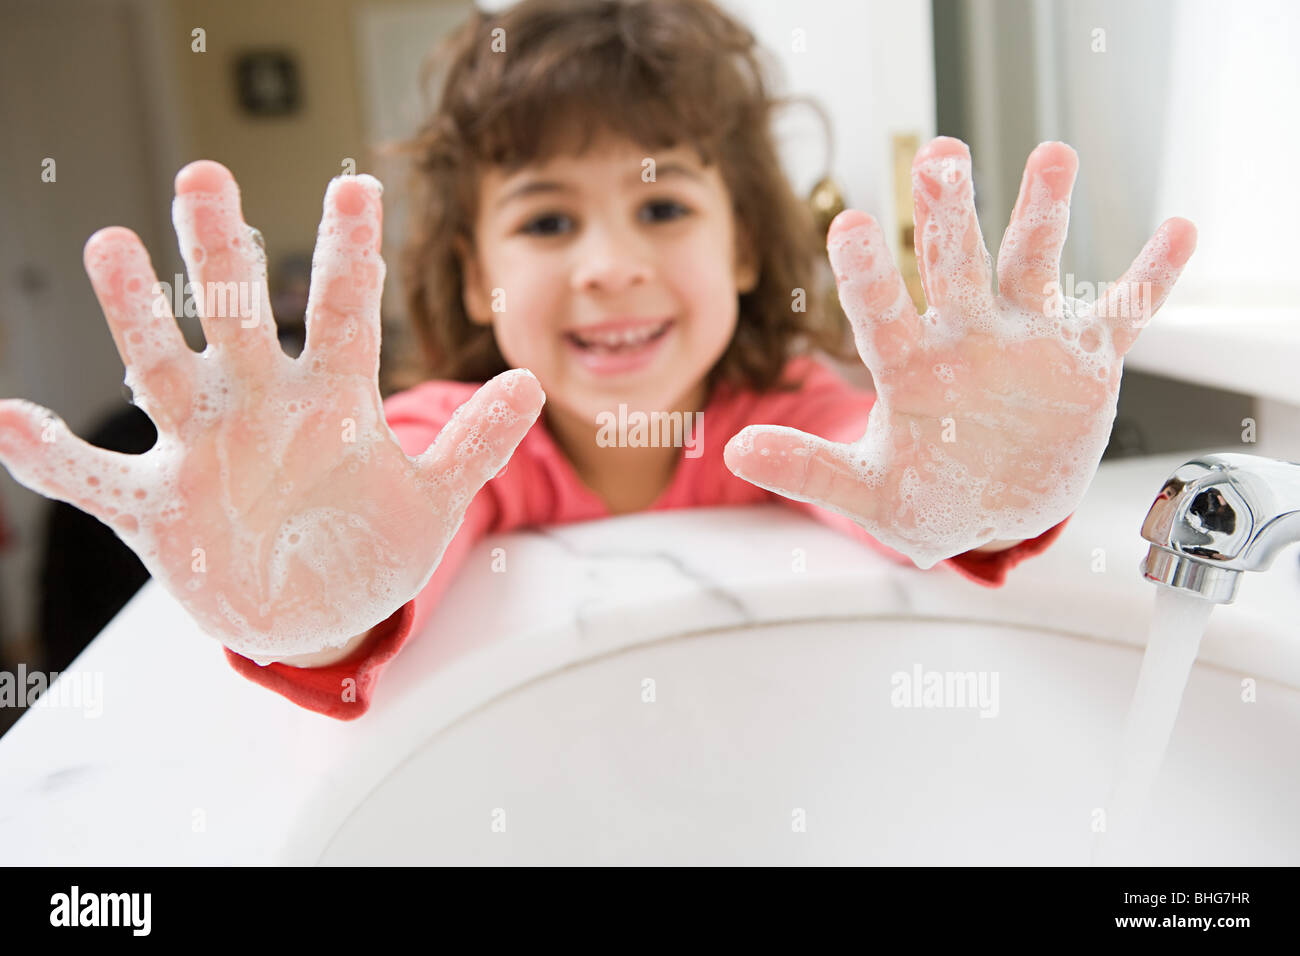 Girl with soap on her hands - Stock Image